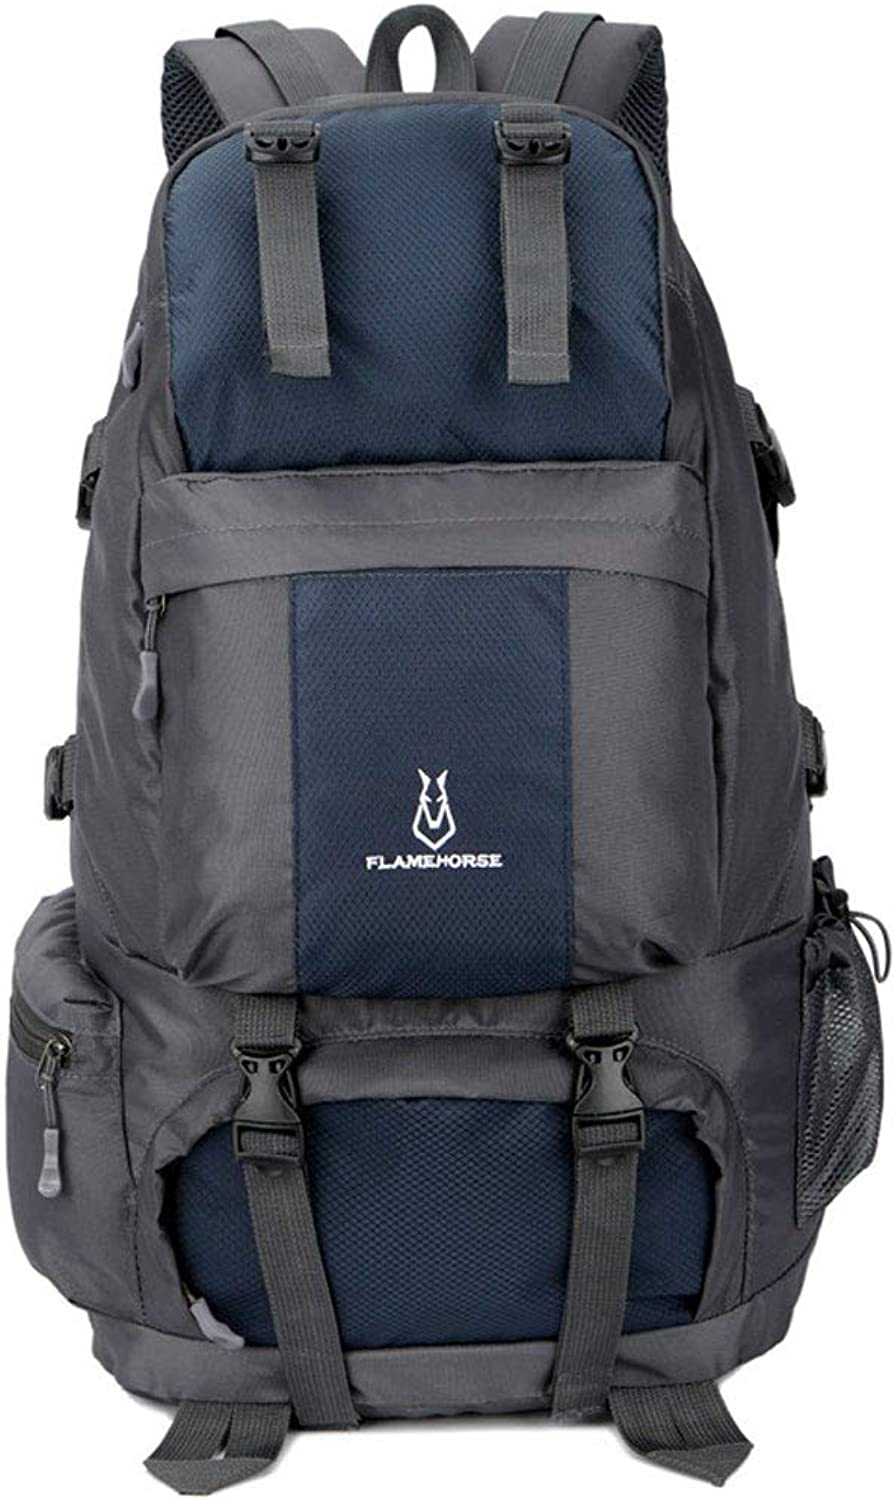 Mountaineering Bag Outdoor Unisex Backpack -50l Large-Capacity Travel Backpack Waterproof Nylon 8 color